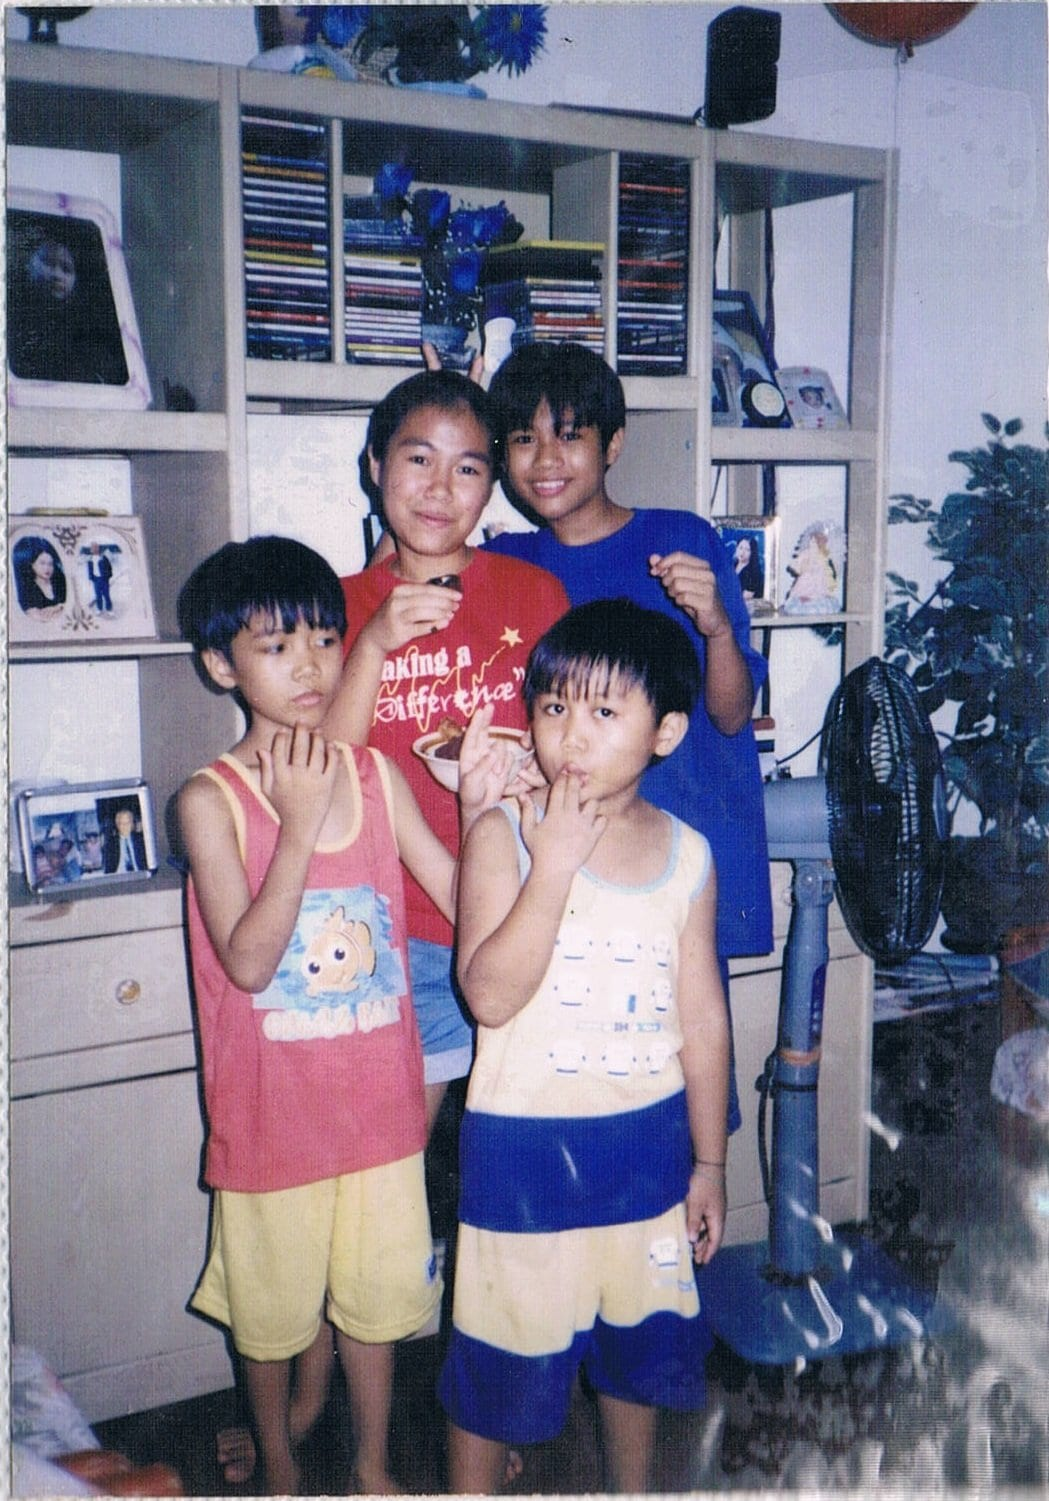 Faith having fun with her younger siblings in their home in the Philippines.